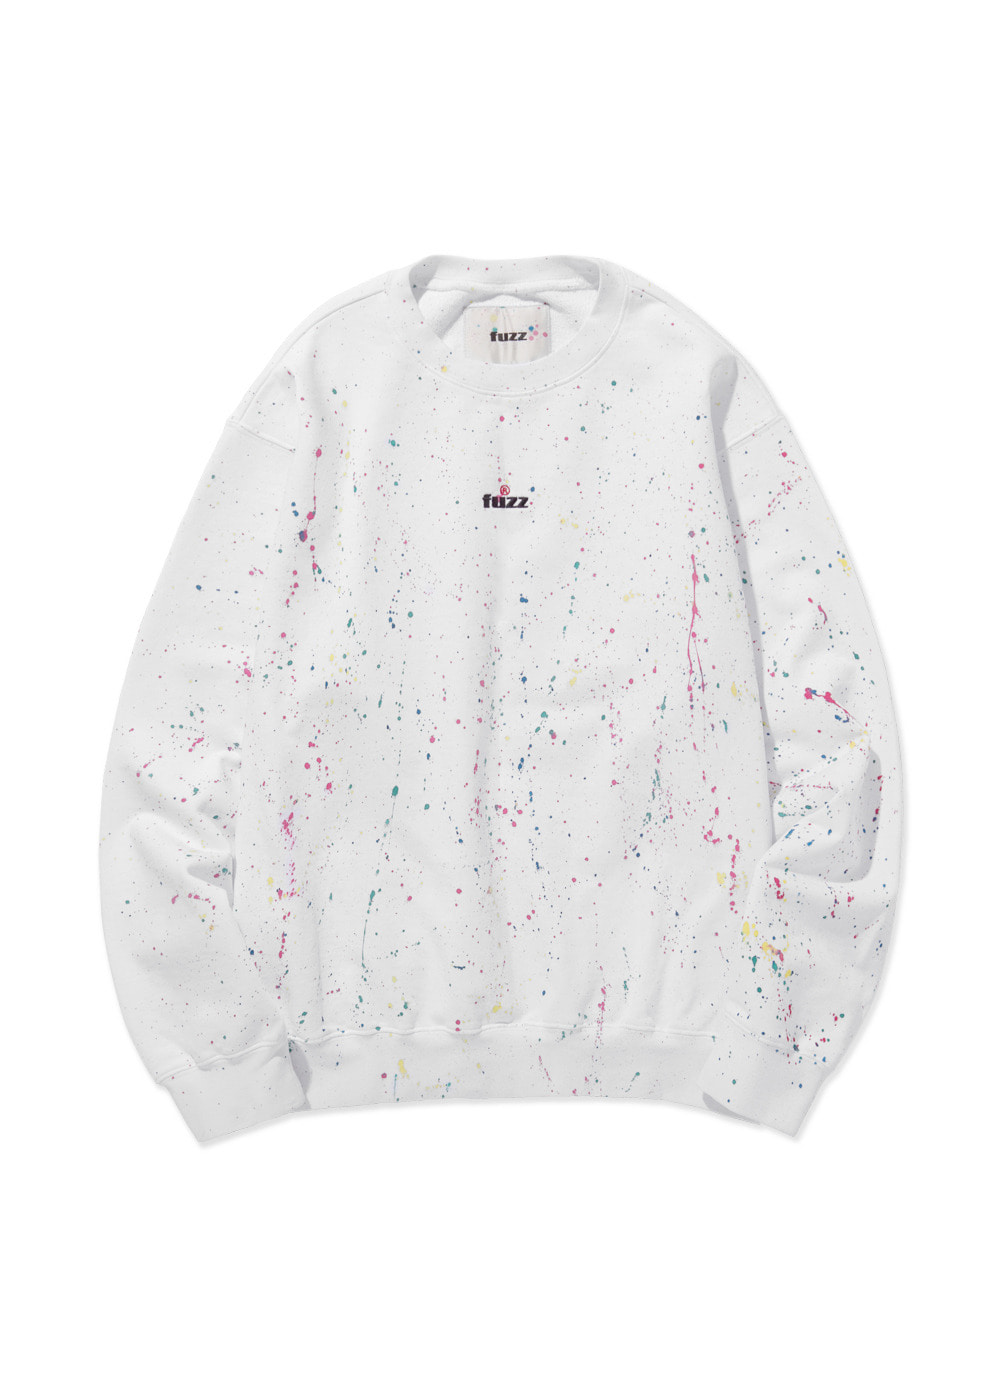 FUZZ OVER DYED PAINT SPLATTER SWEATSHIRT white